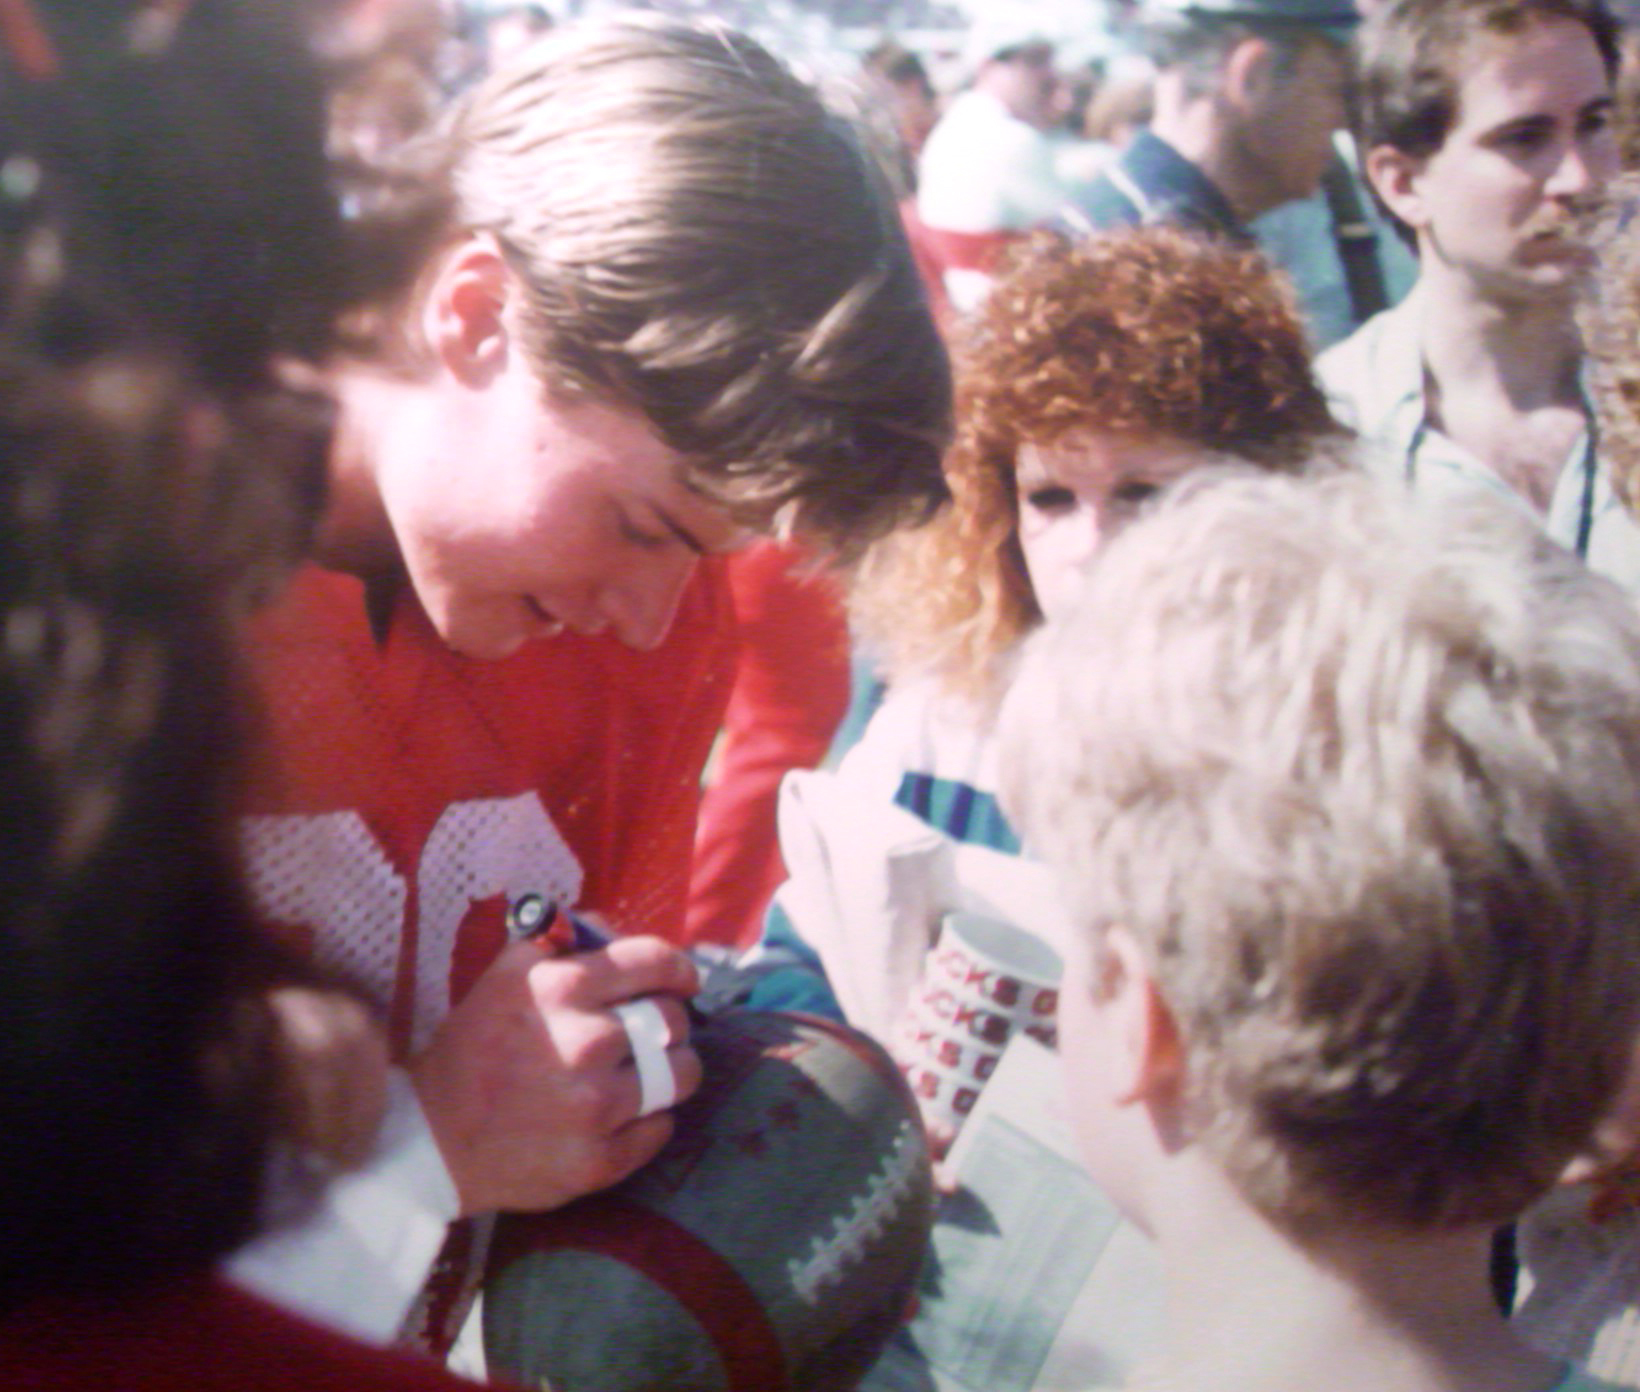 Autographing football 1988 color corrected